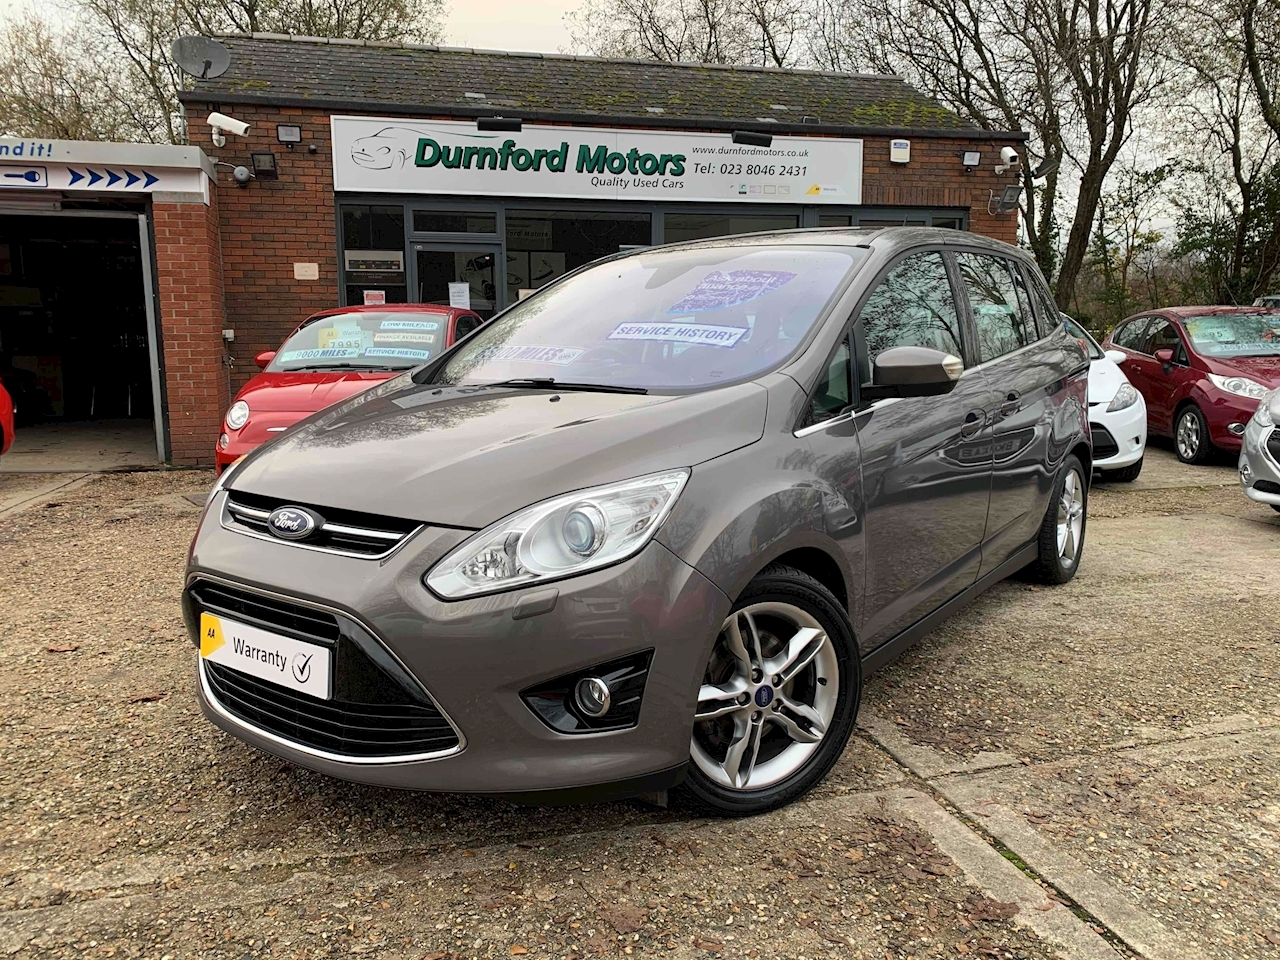 Ford Grand C-Max Titanium X MPV 1.6 Manual Diesel